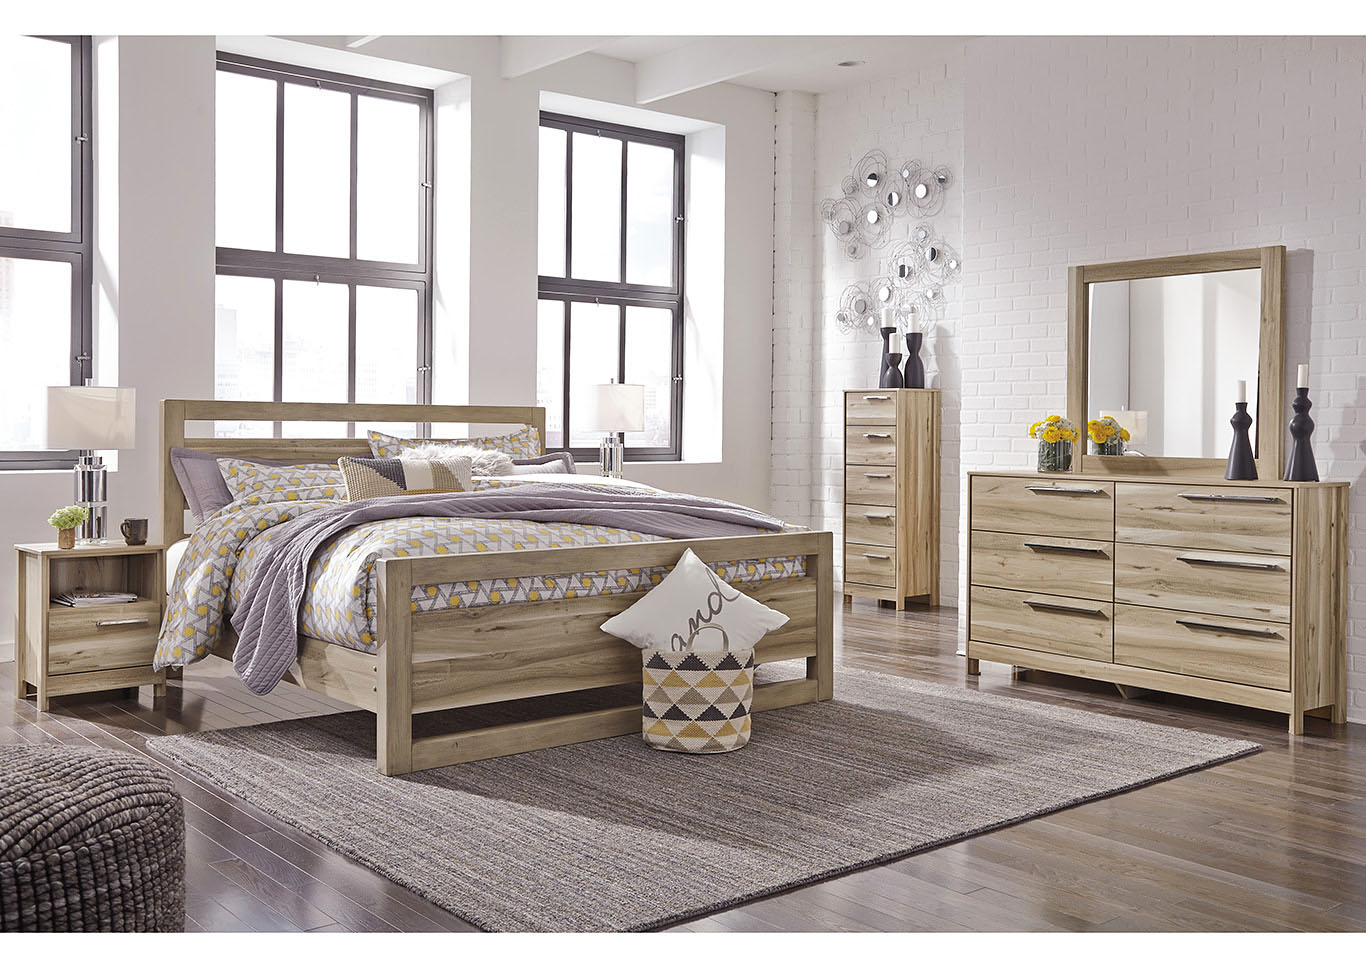 Kianni Taupe Queen Panel Bed w/Dresser and Mirror,Benchcraft